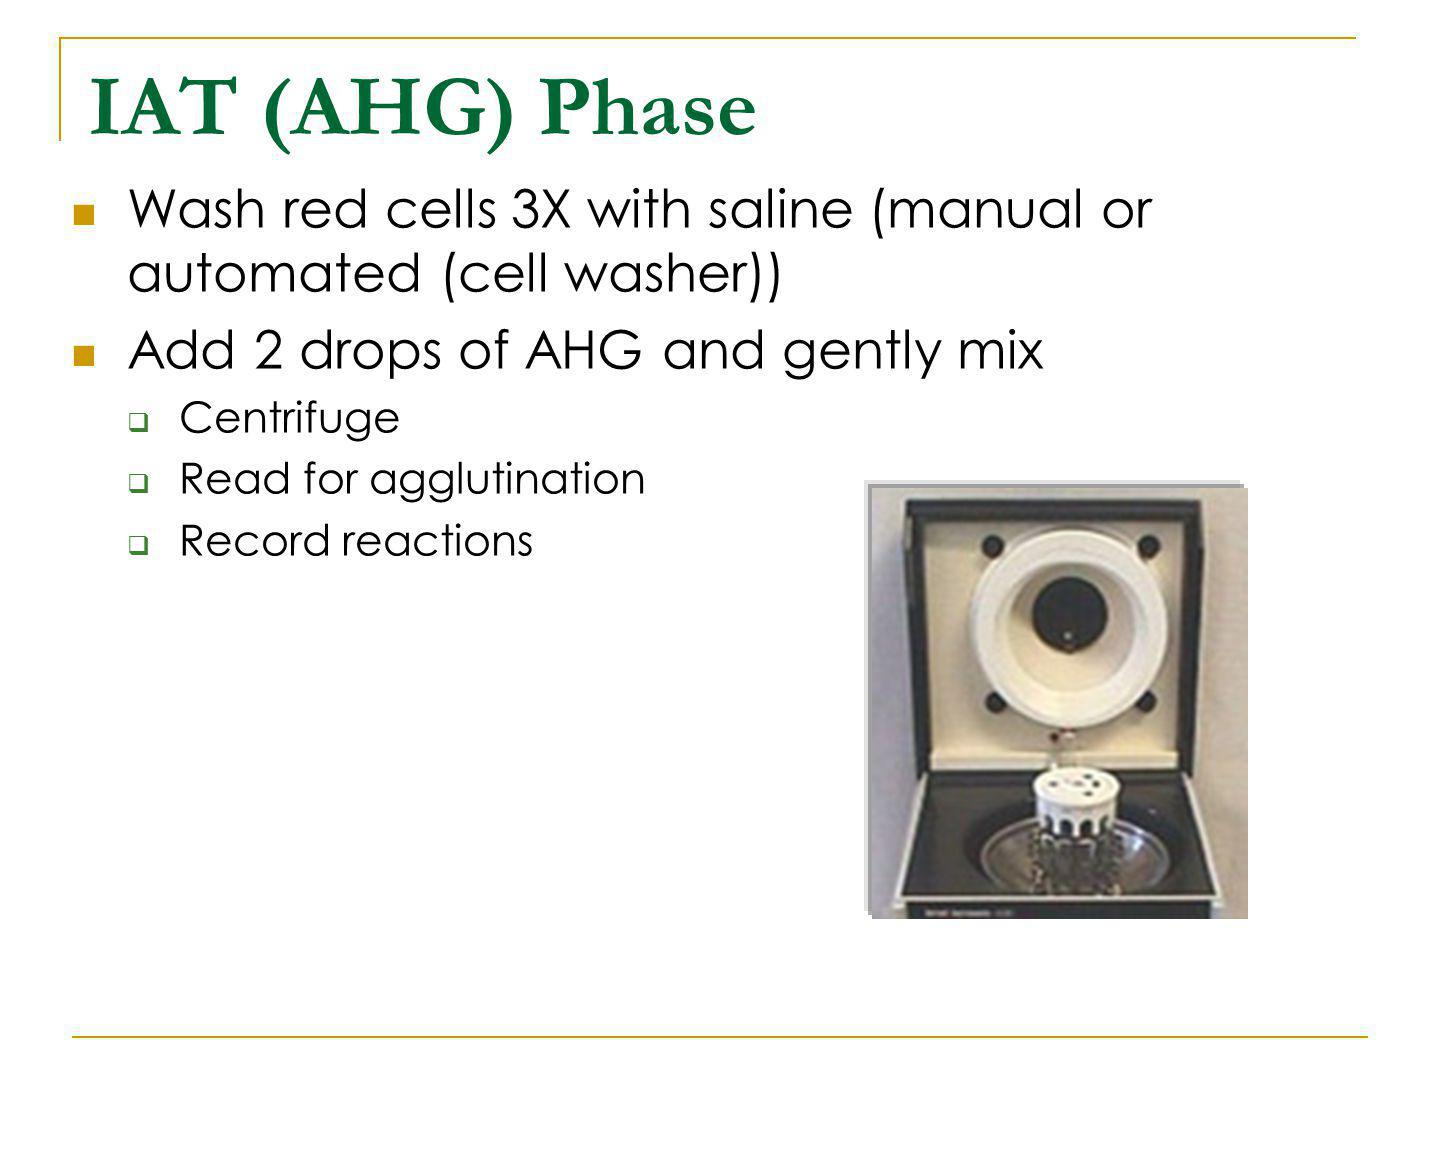 IAT (AHG) Phase Wash red cells 3X with saline (manual or automated (cell washer)) Add 2 drops of AHG and gently mix.